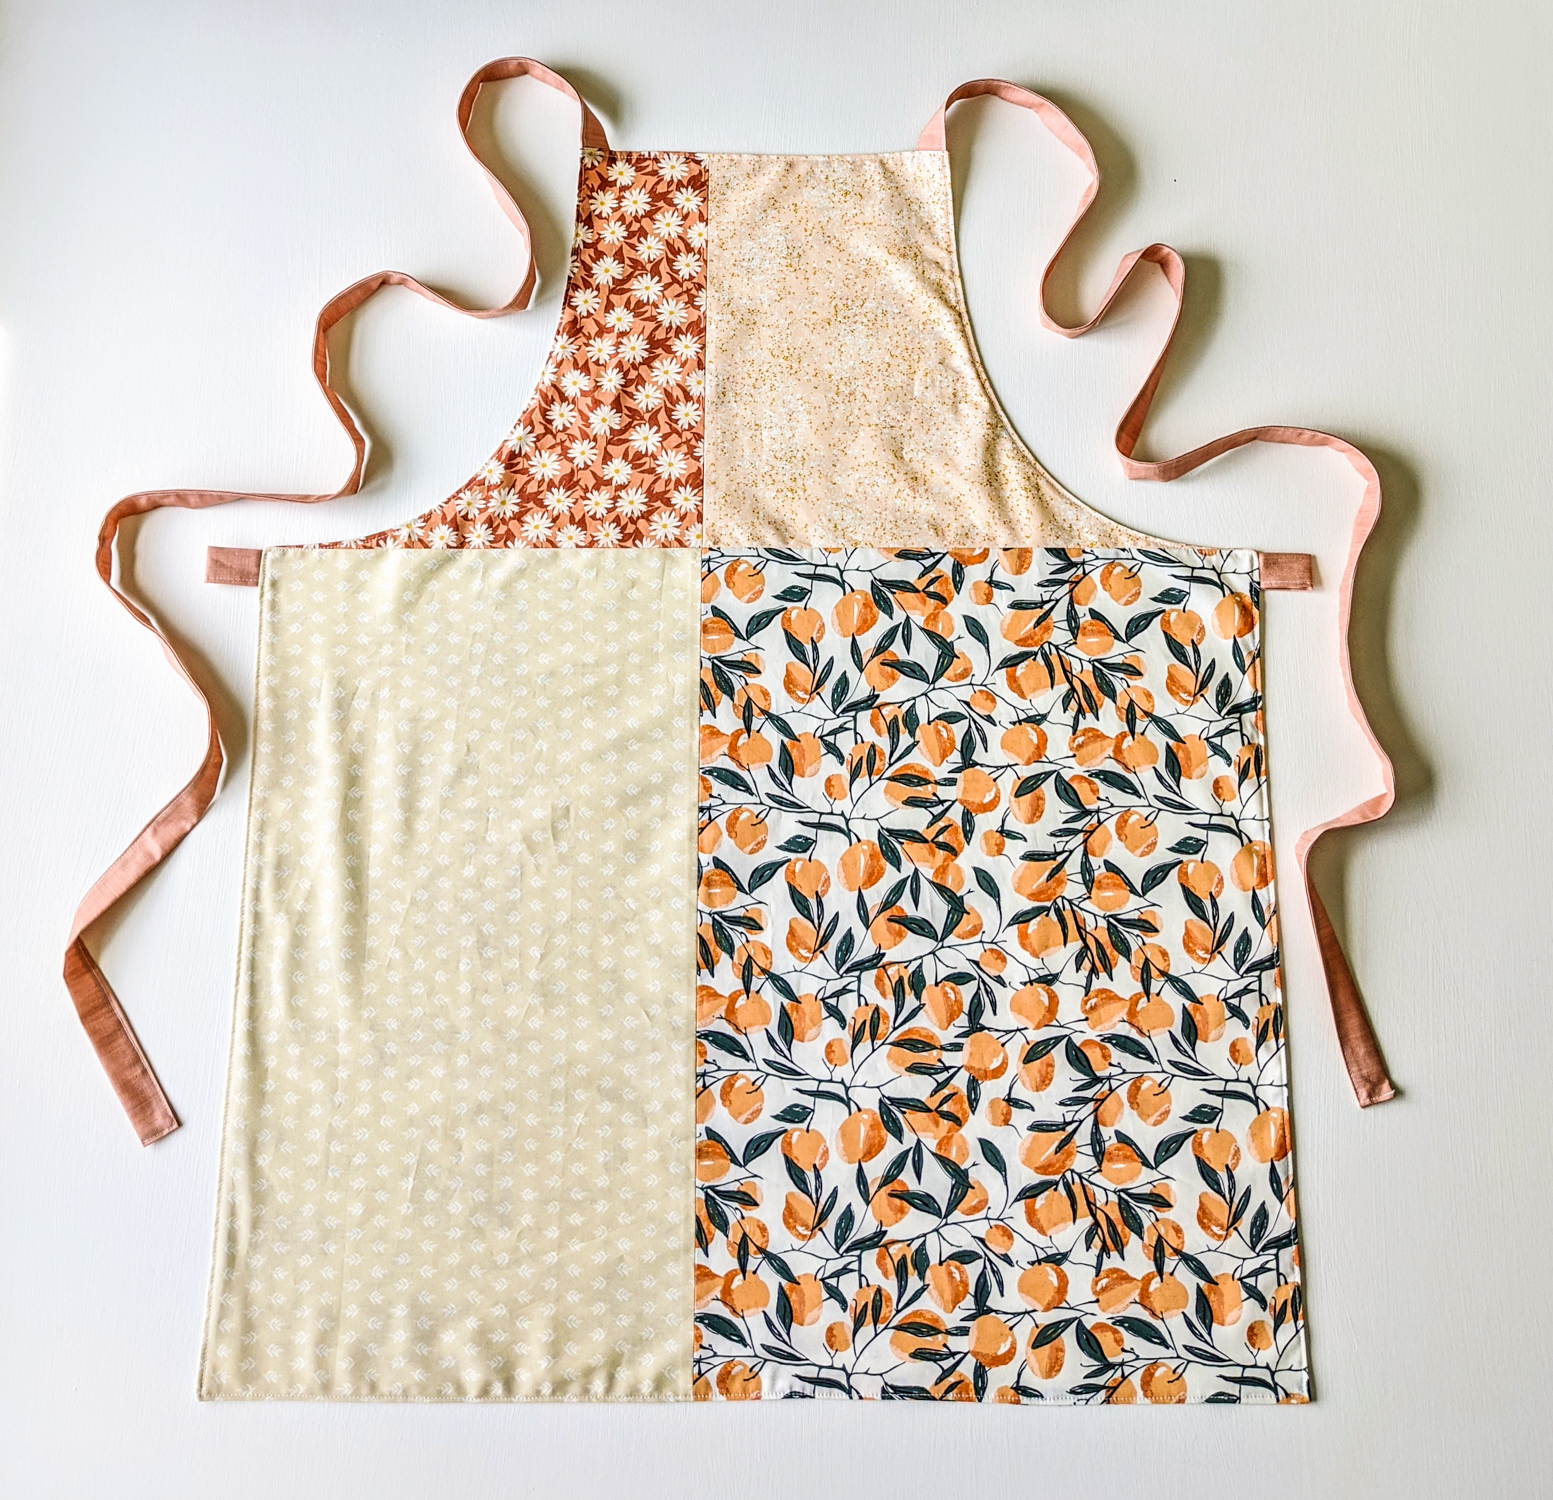 This modern patchwork apron tutorial is a fun, quick project for any sewing skill level!